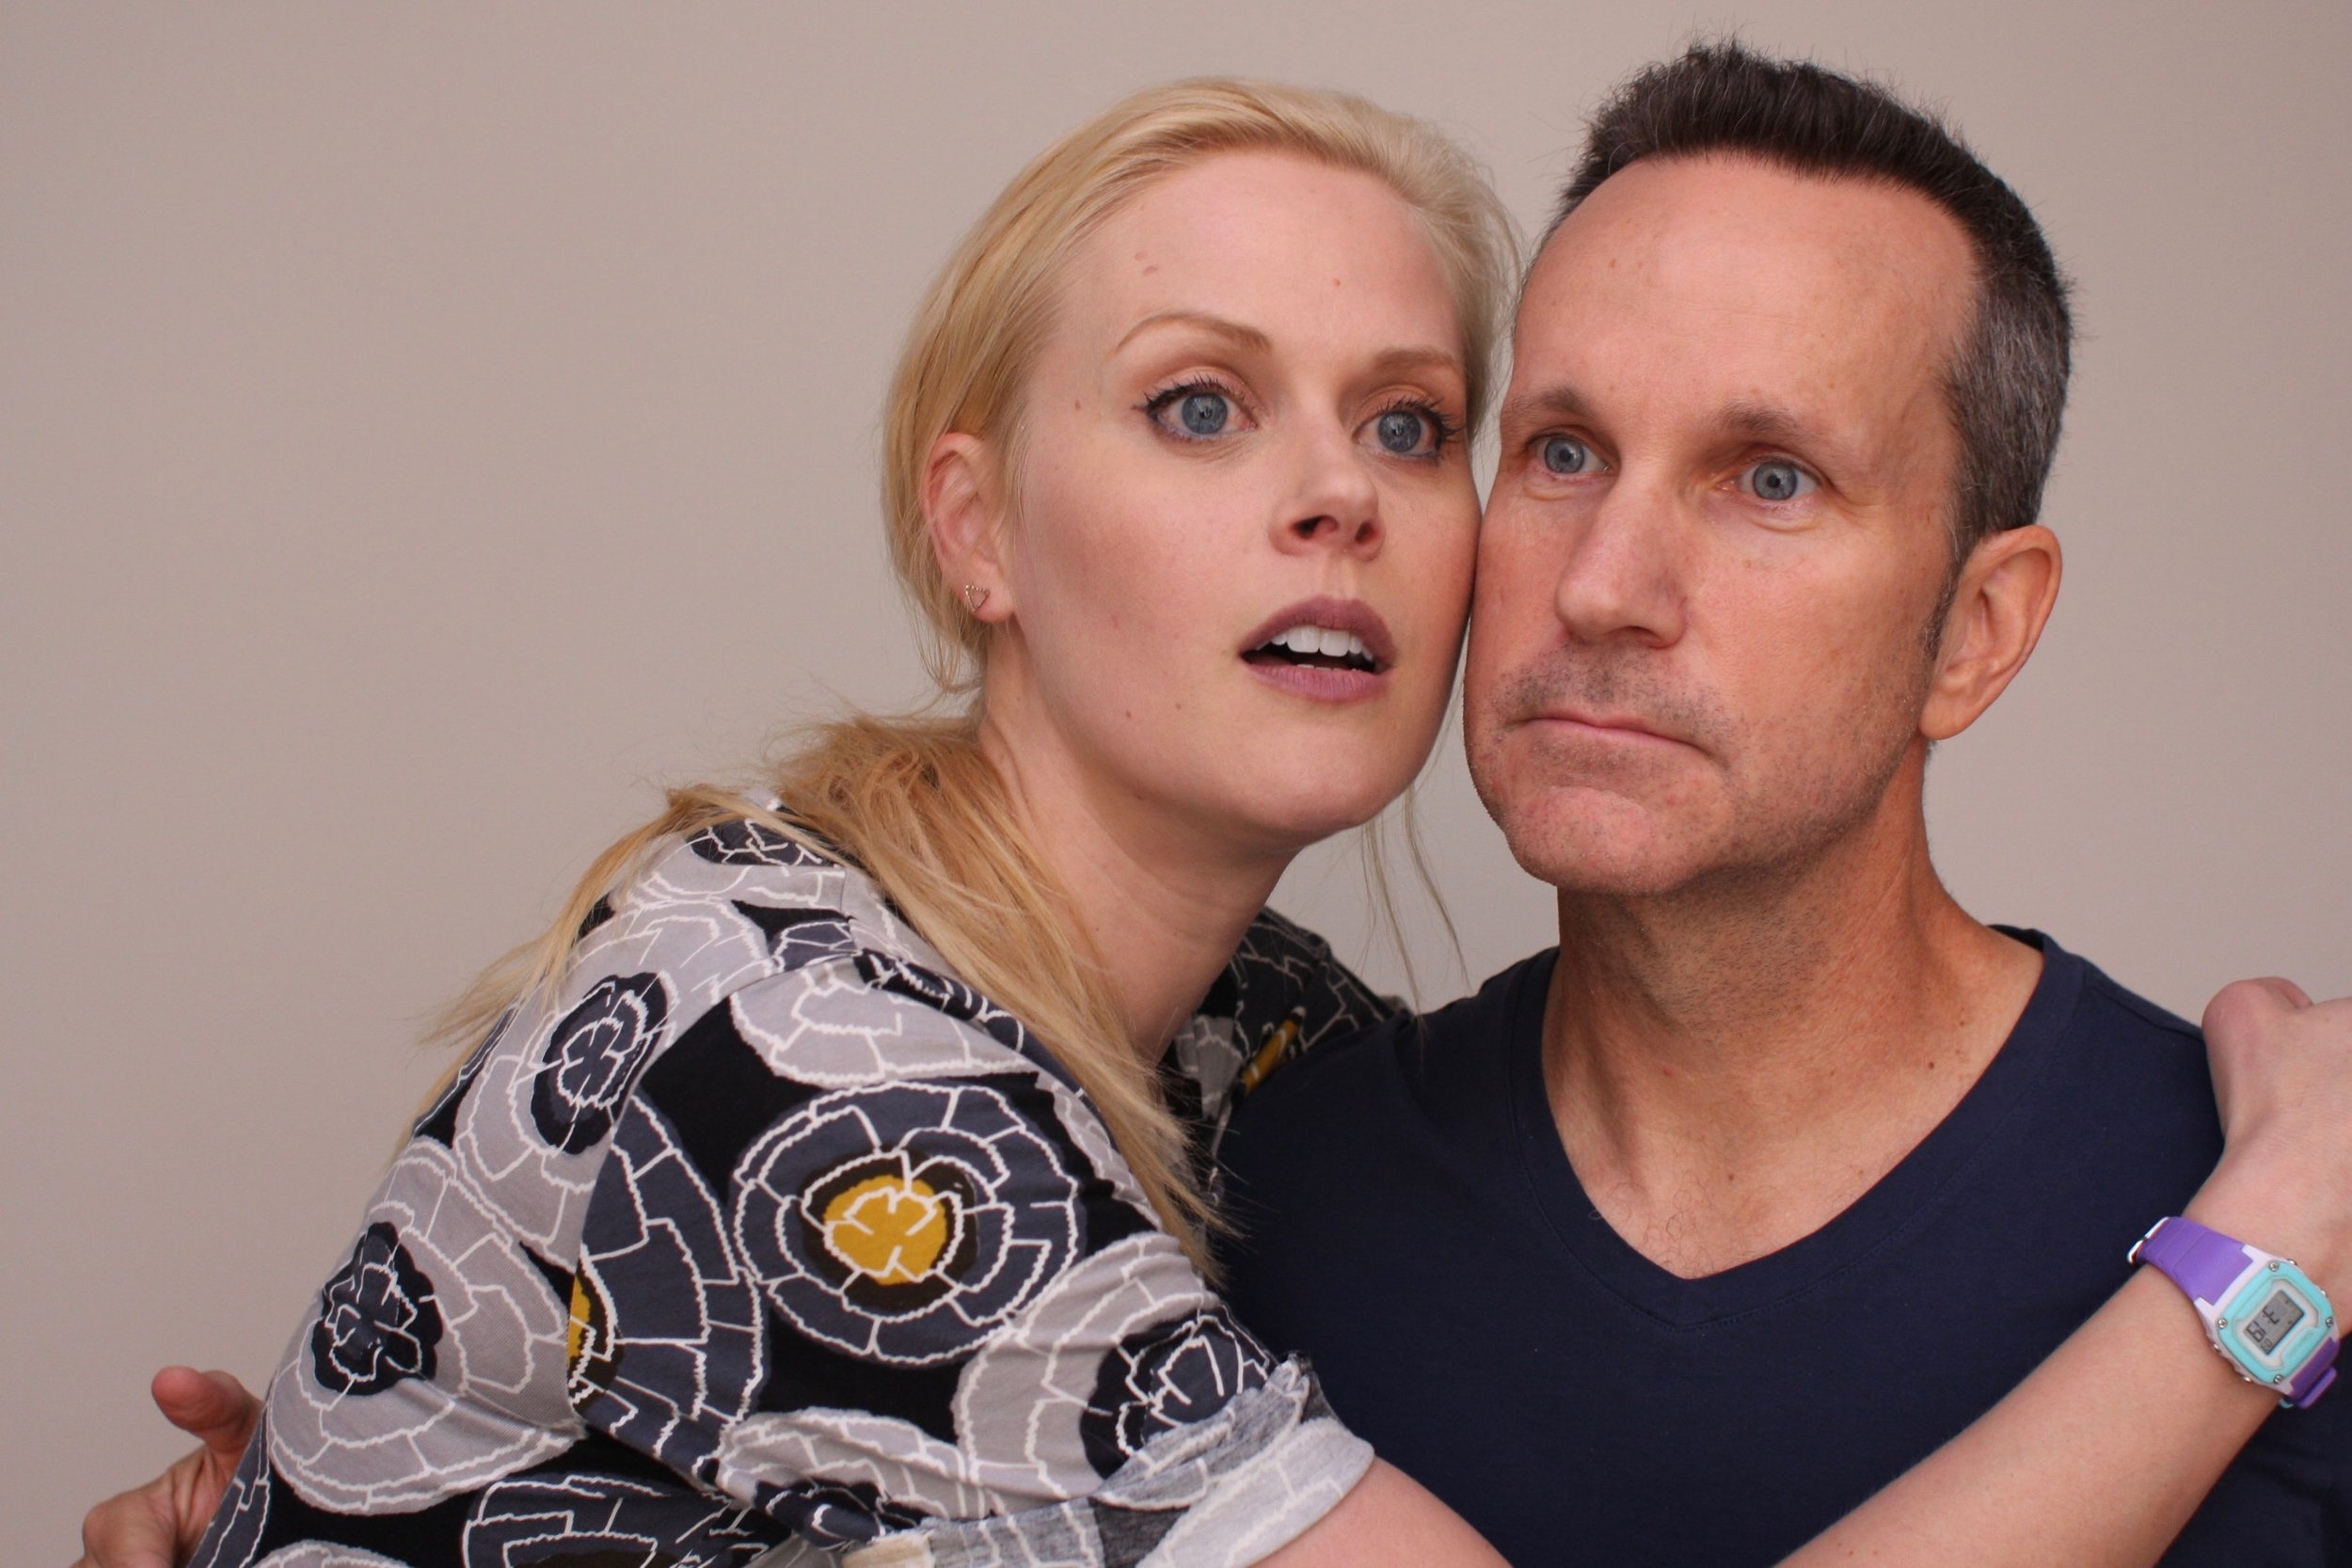 Never Not Funny: The Jimmy Pardo Podcast#2105 Janet Varney(September 7th, 2017) - Signing in with Janet Varney.